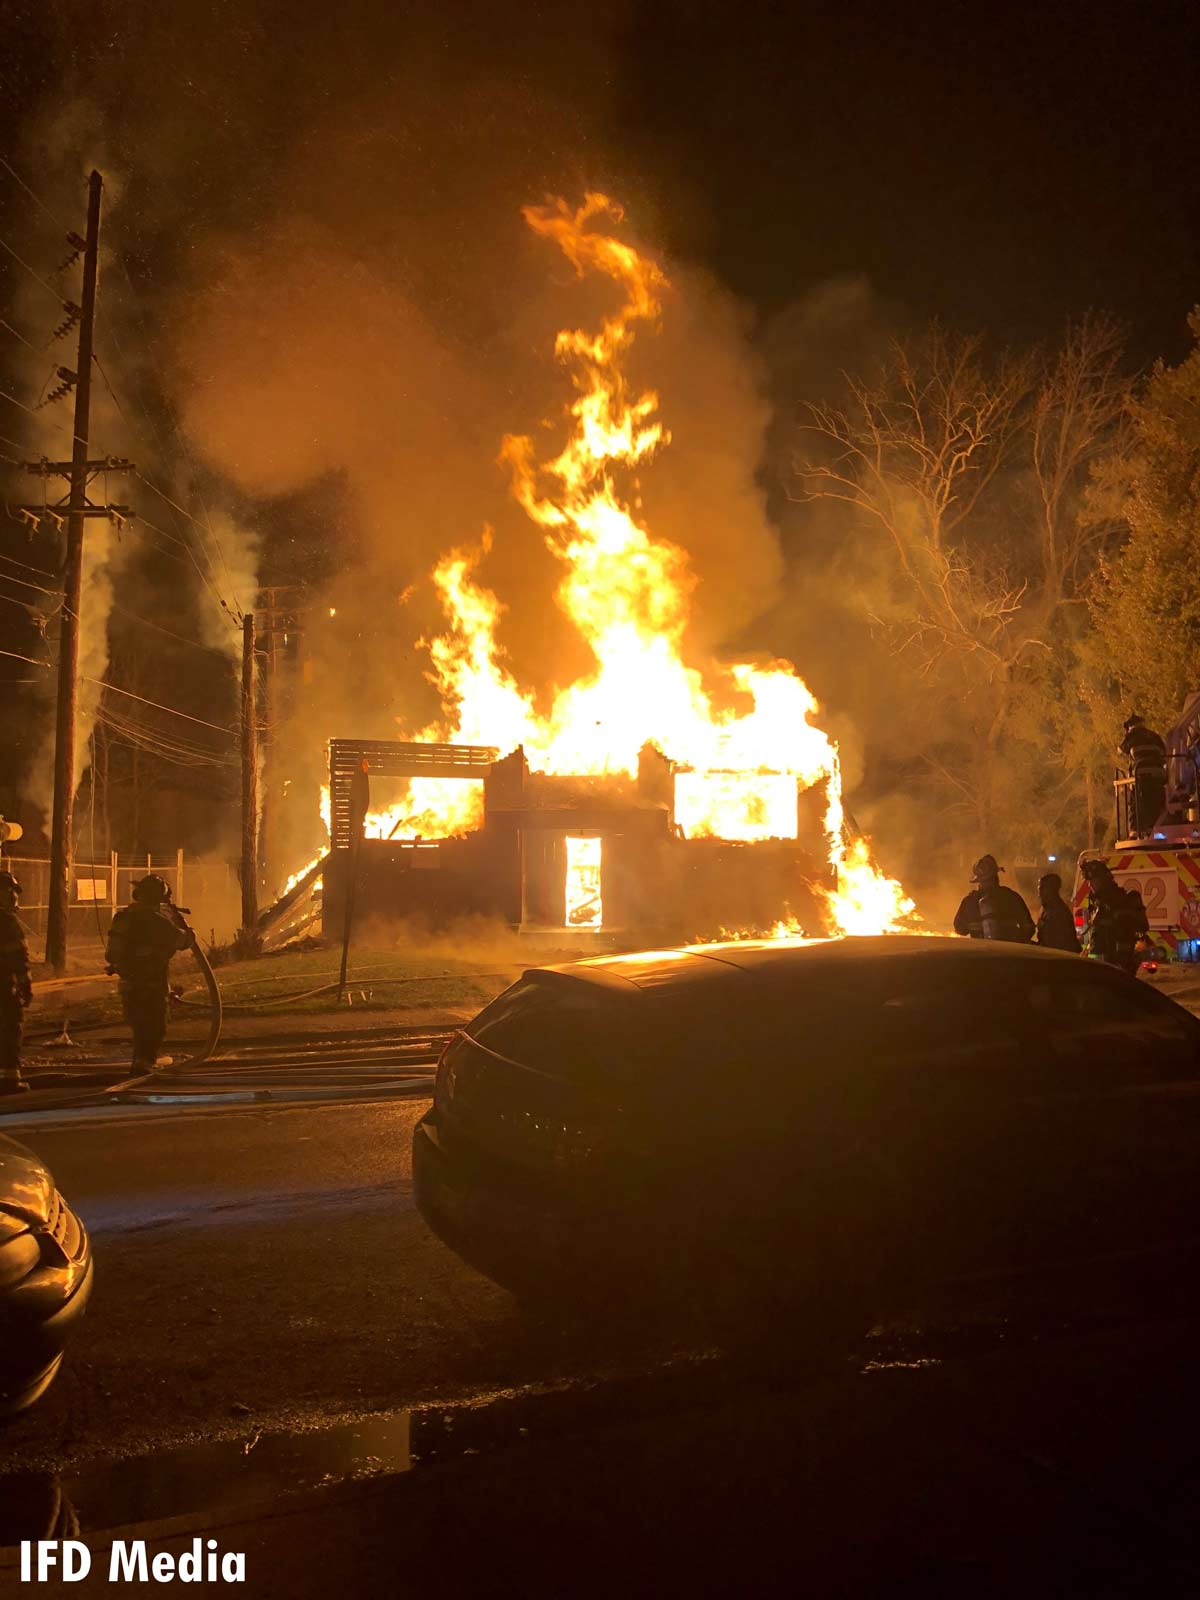 Indianapolis firefighter on scene of a raging fire